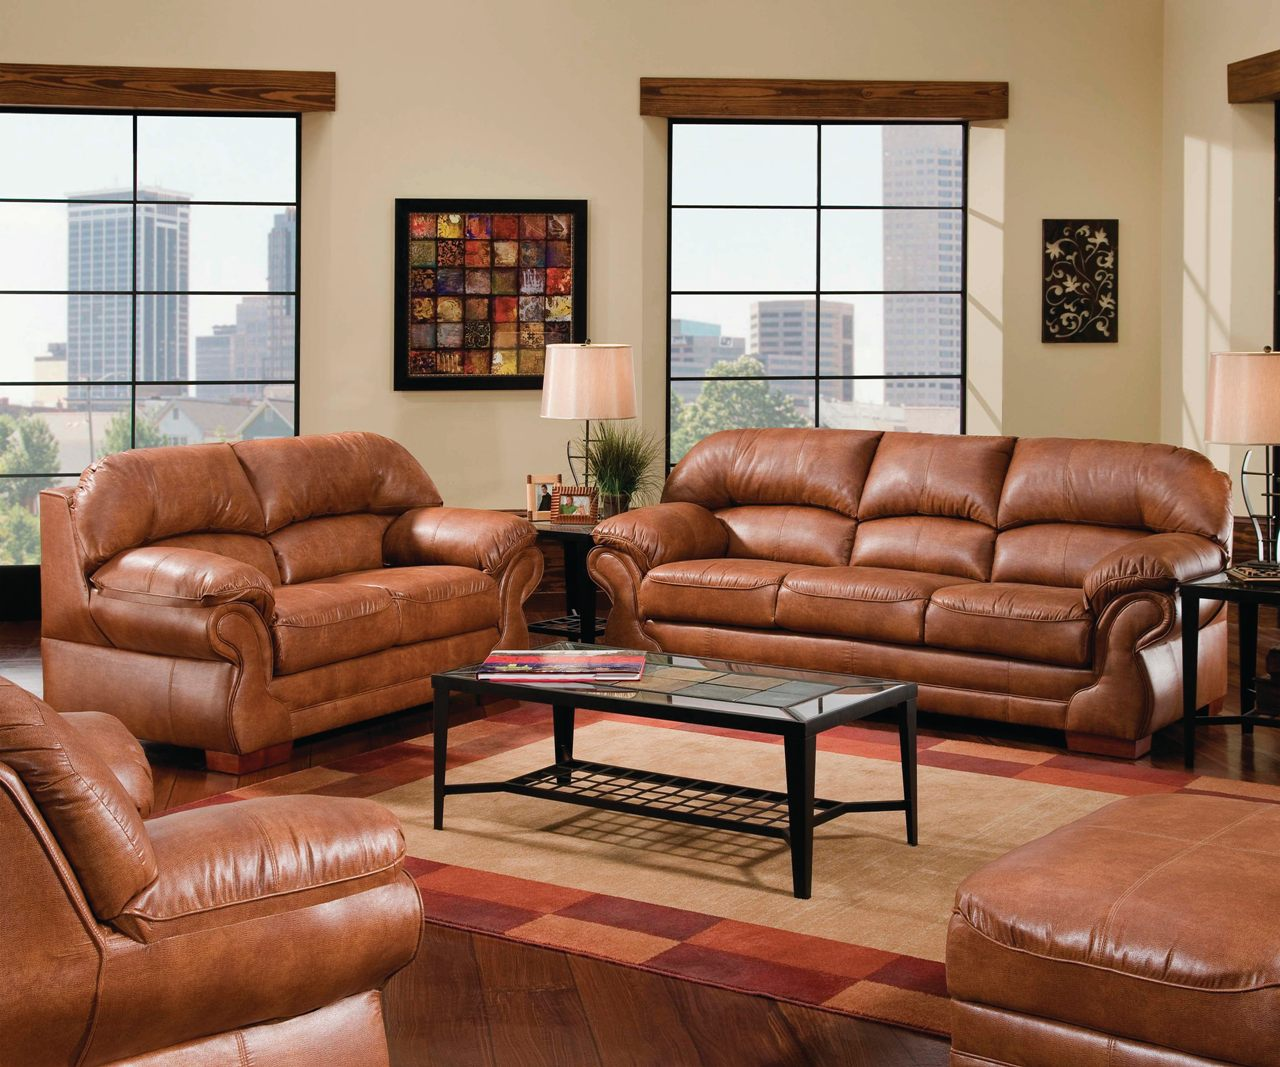 Advantages Disadvantages Of Leather Sofa Turkey Sofa